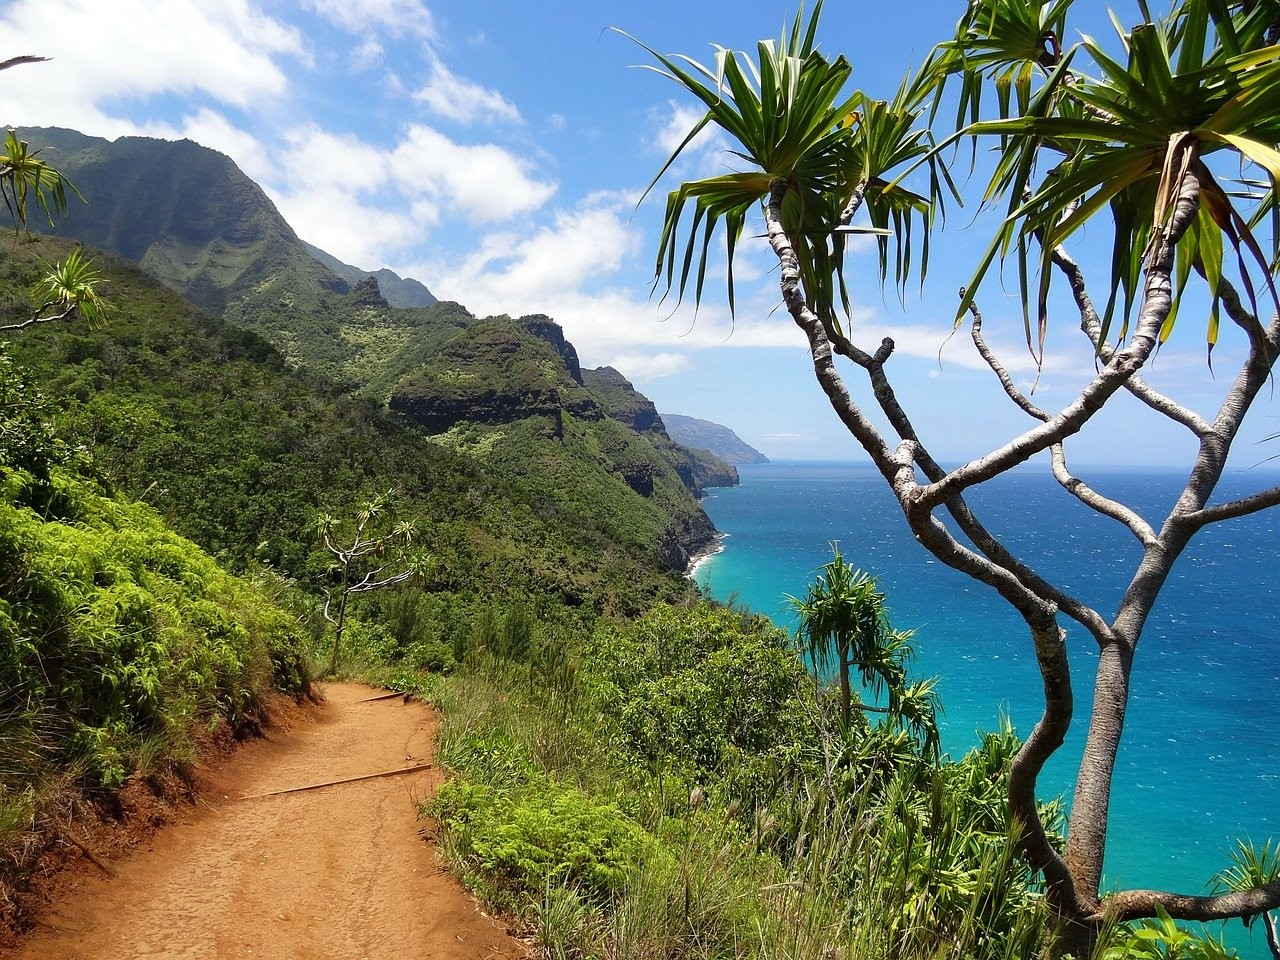 Visit Hawaii - Napali Coast - The Travel Factory